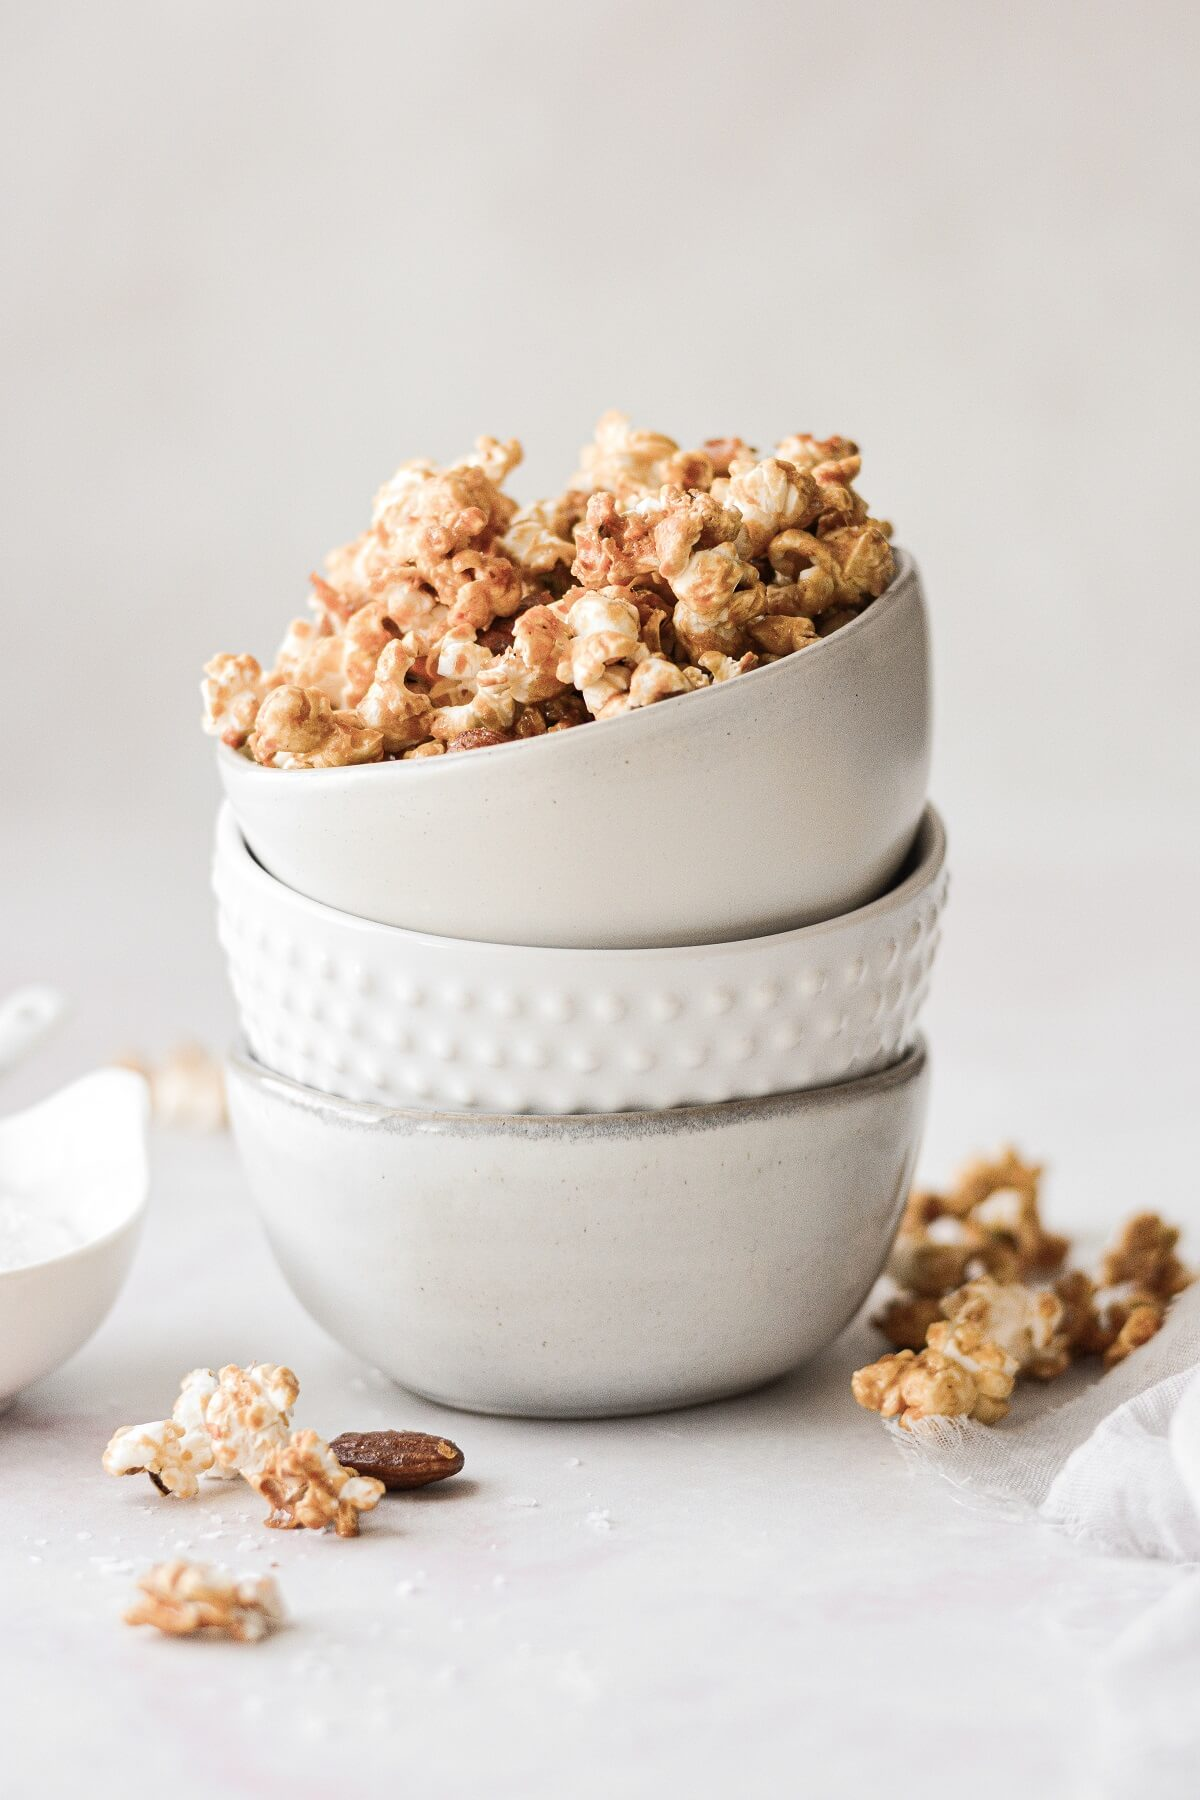 A stack of bowls with the top one filled with caramel popcorn.